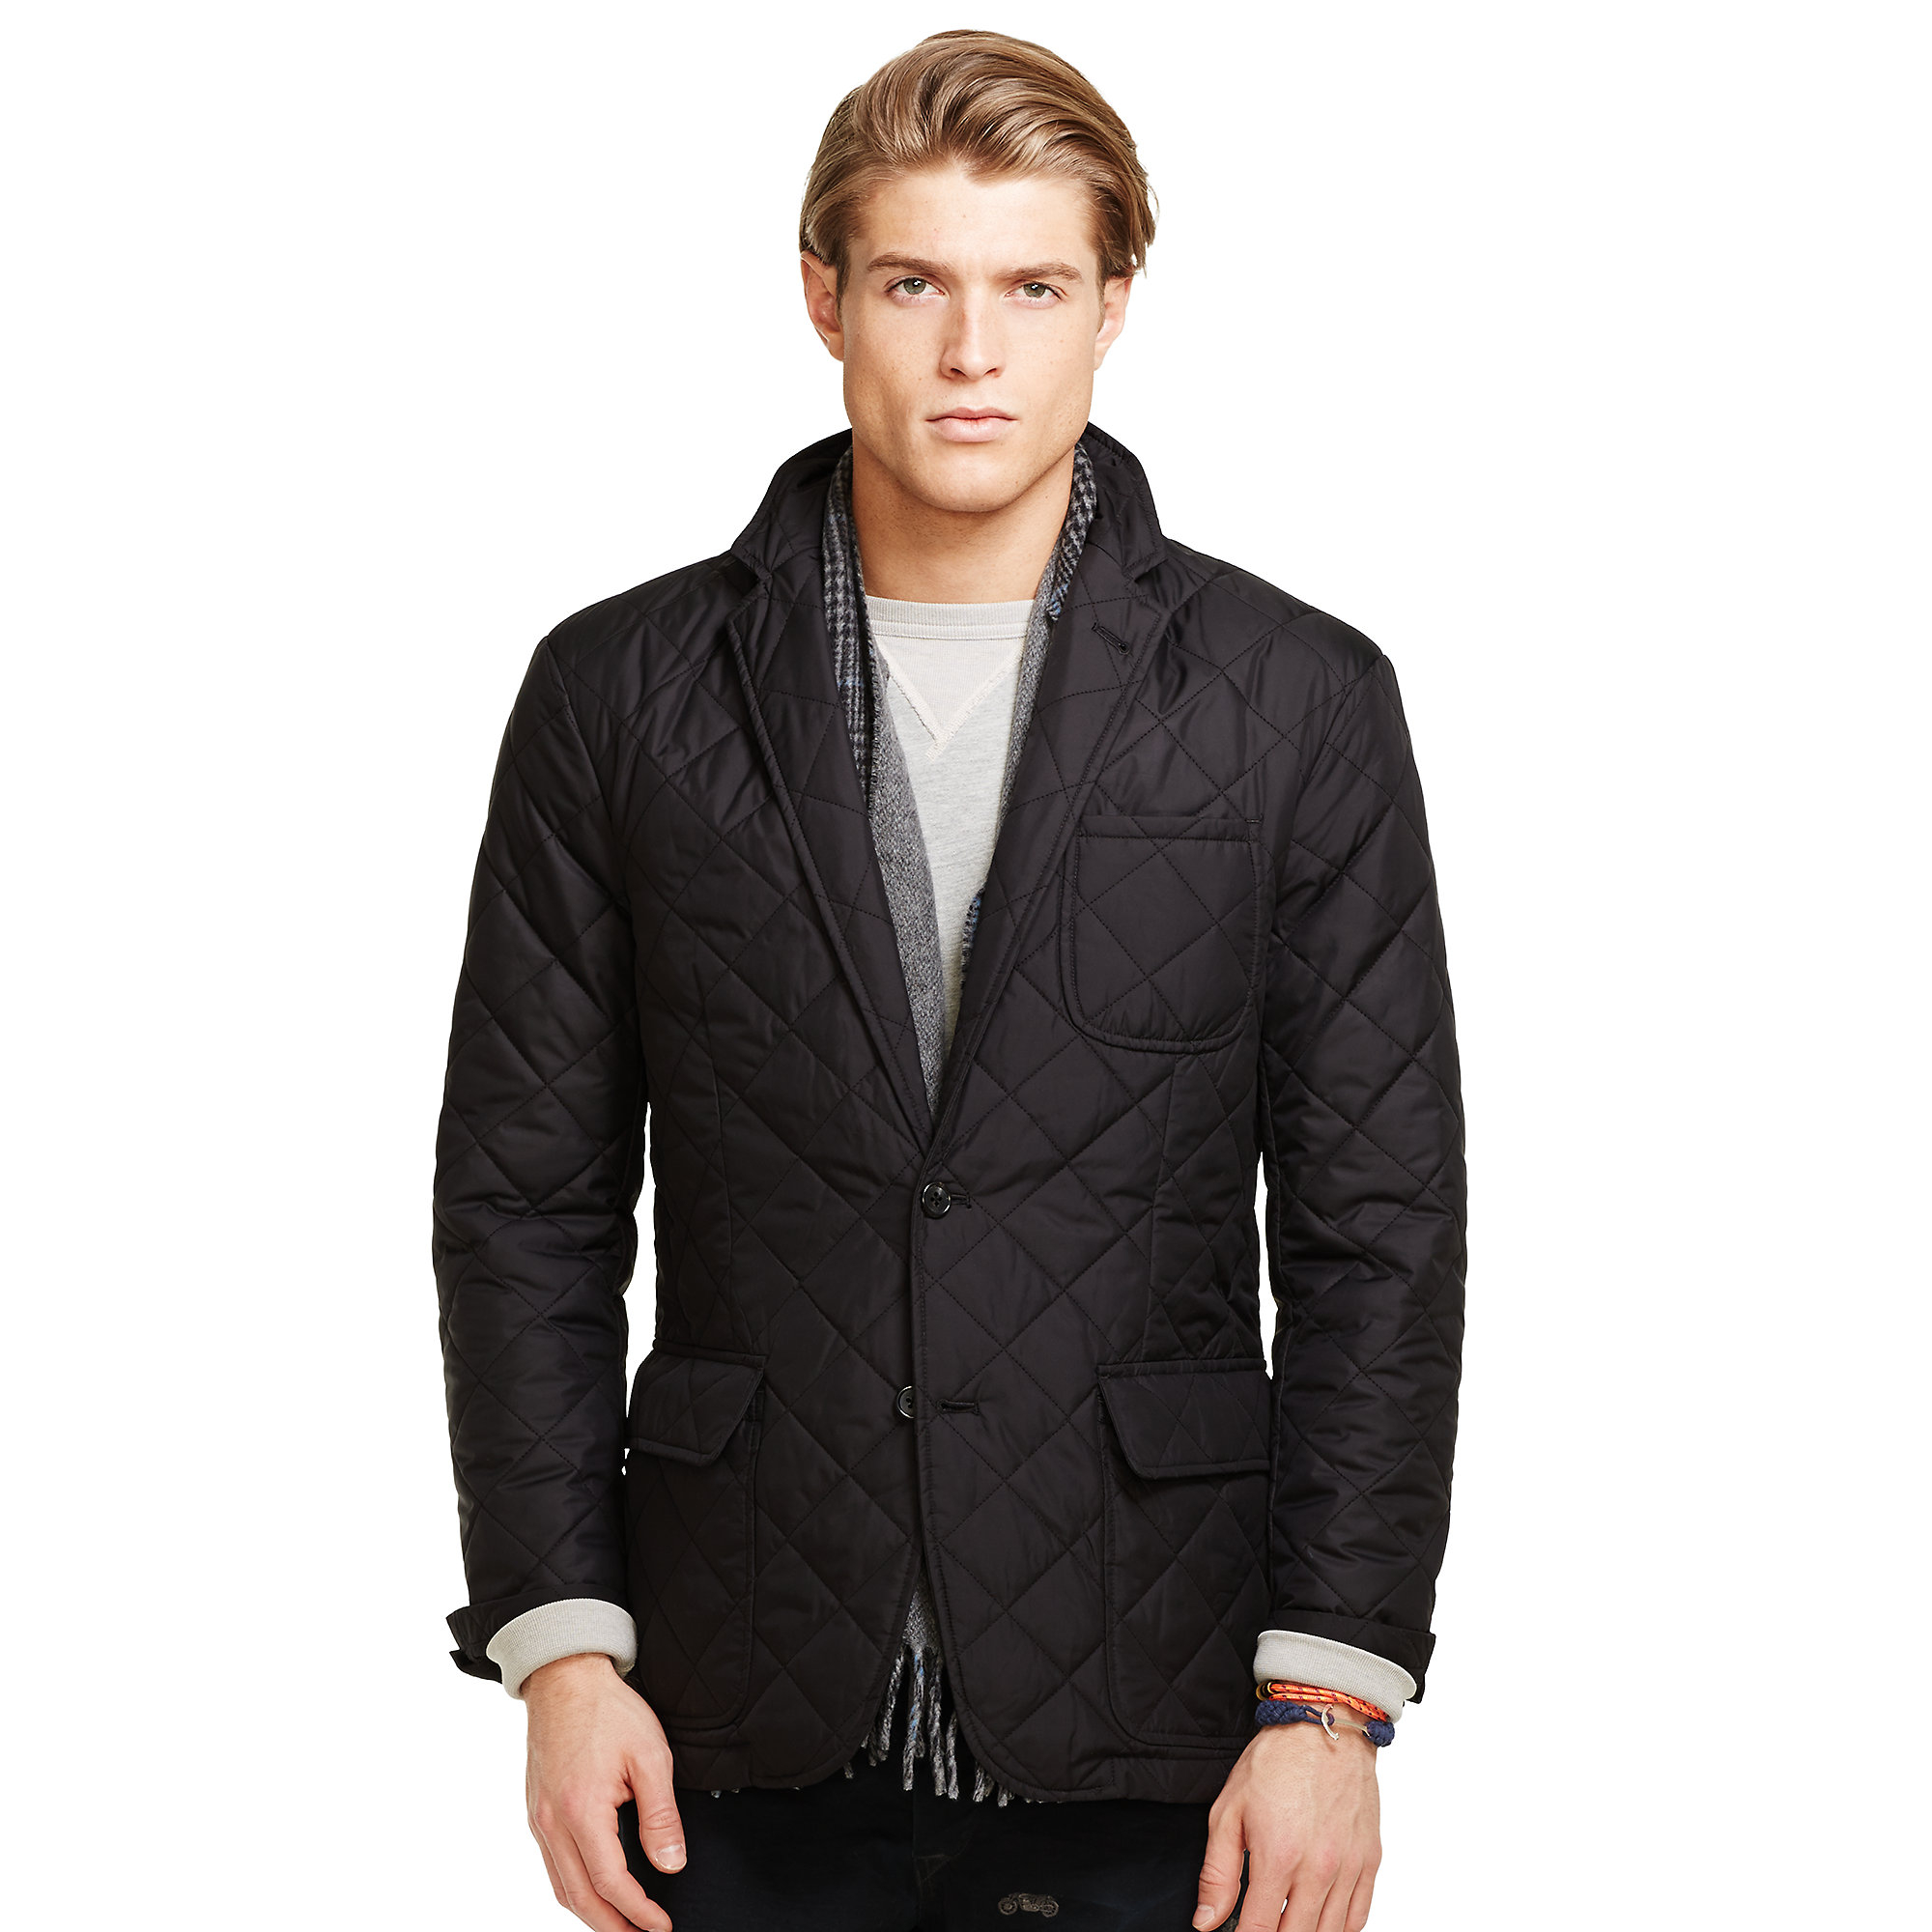 Polo ralph lauren quilted sport coat in black for men lyst for Polo shirt with sport coat